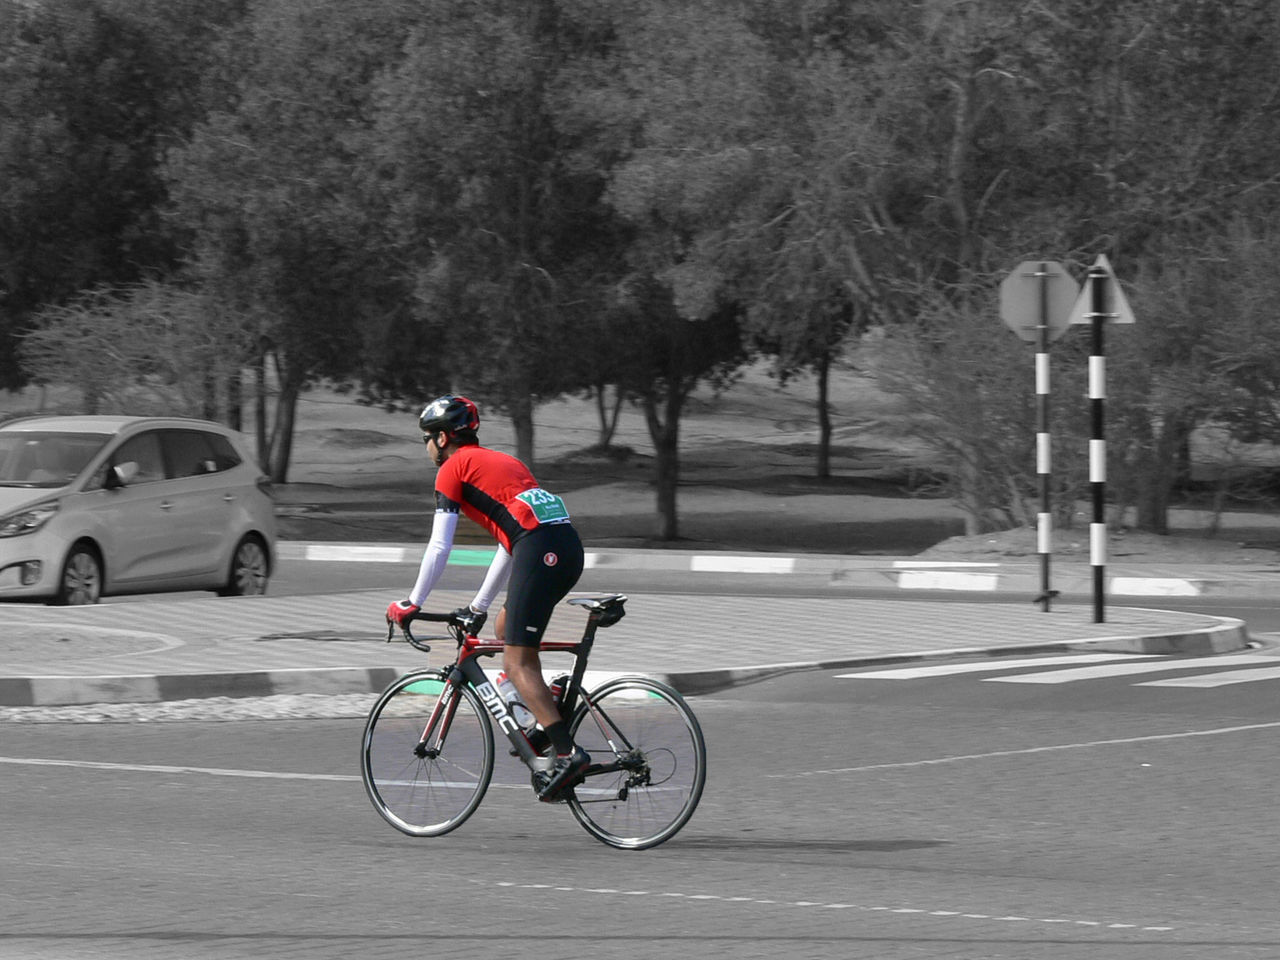 Nothing better than a morning traning while streets still empty and the wind flush your face refreshing ur mind <3 Adult Bicycle Blackandwhite Cycling Cycling Helmet Day Full Length Headwear One Man Only One Person Outdoors Sport Sports Photography Sports Wear Streetphotography Tree Young Adult